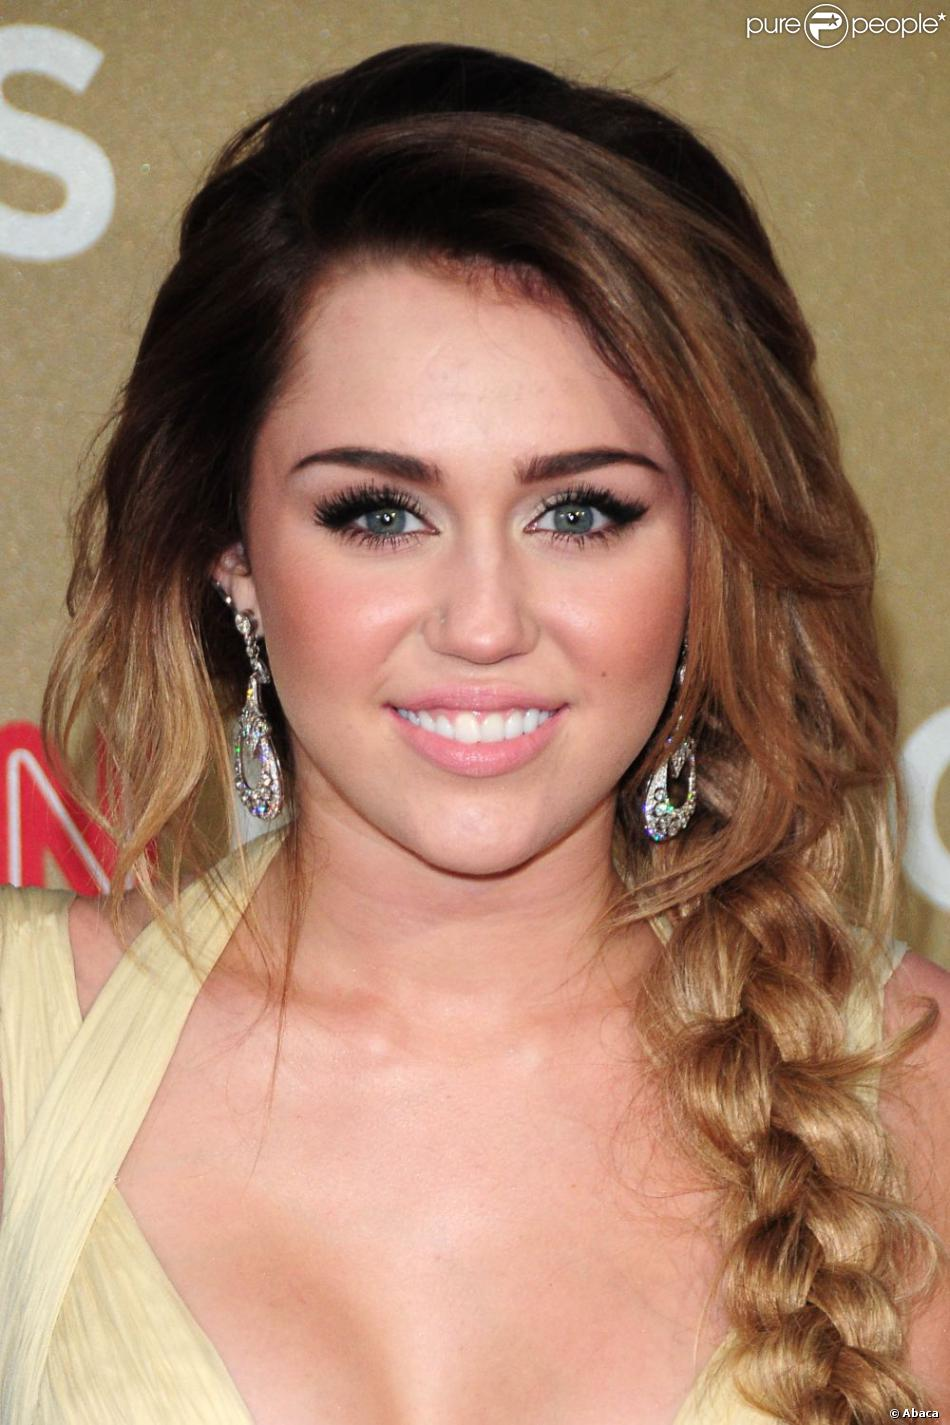 miley cyrus avec un ombr hair et des cheveux longs tress s purepeople. Black Bedroom Furniture Sets. Home Design Ideas